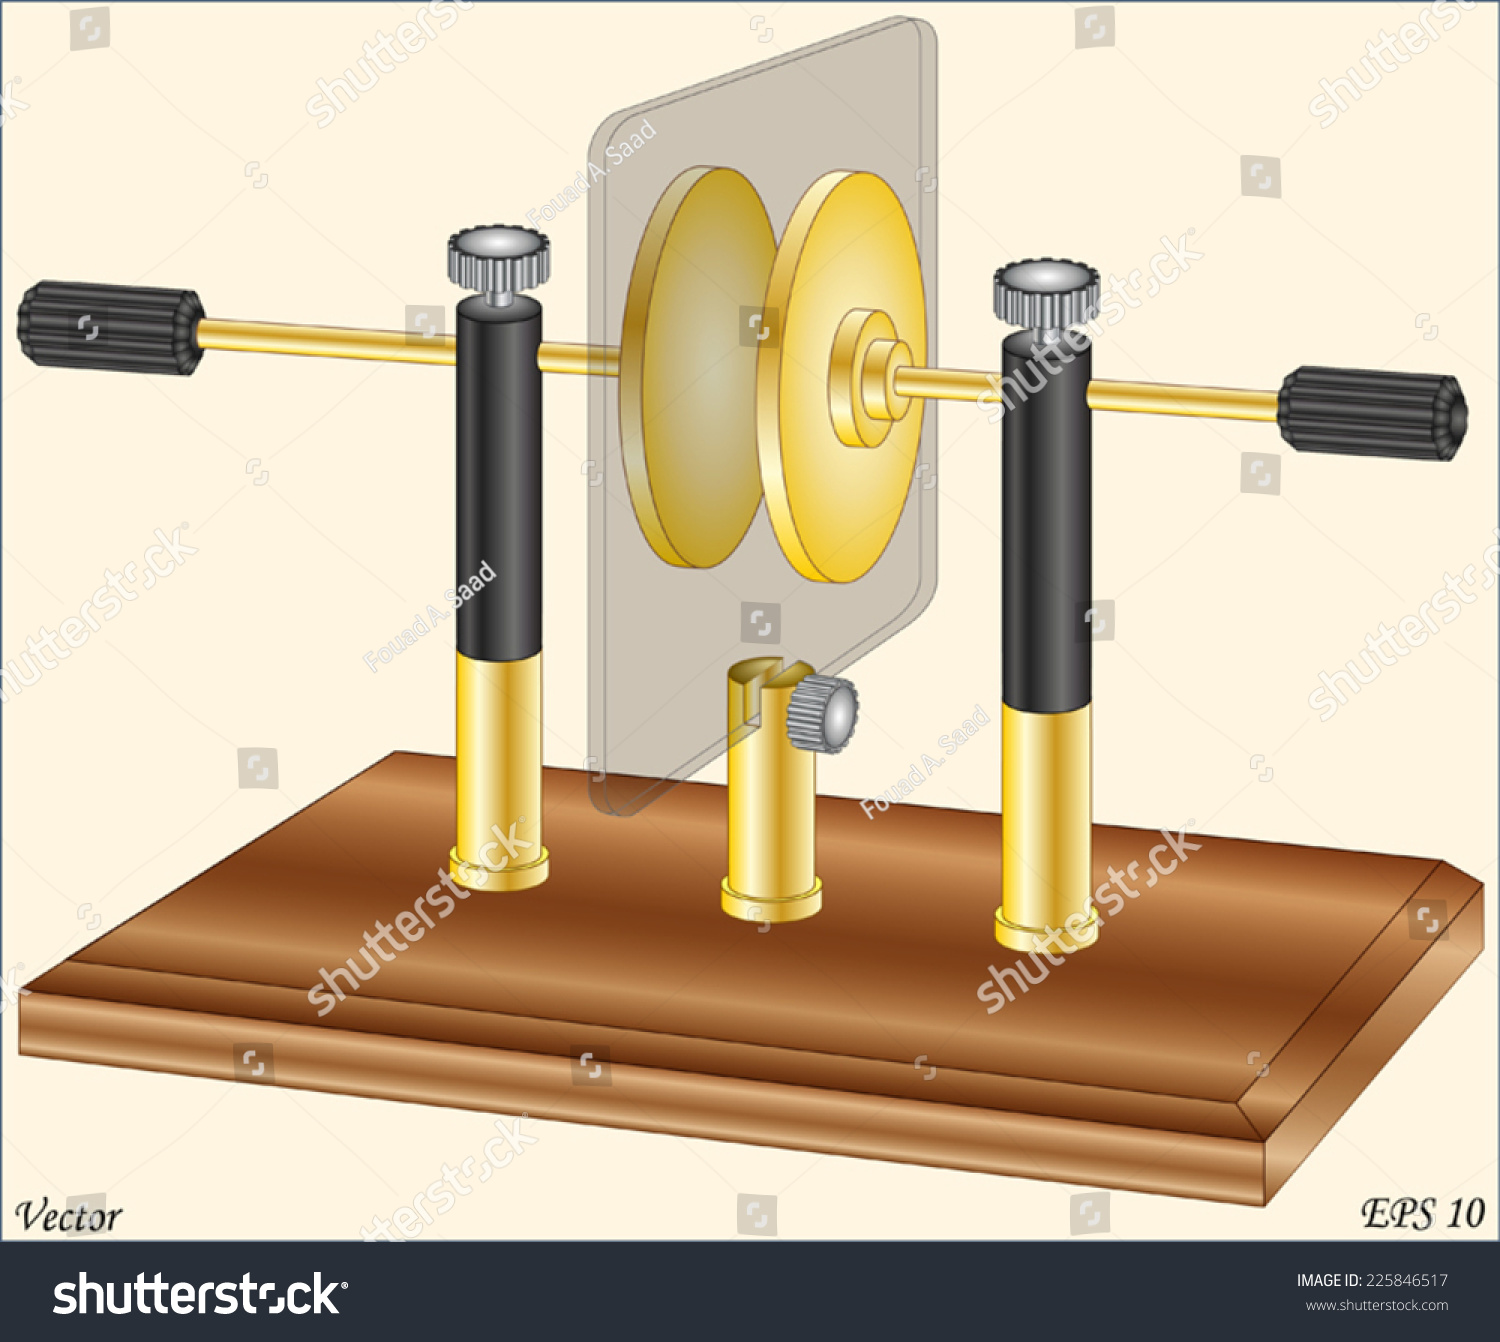 Index additionally Electromag furthermore 1019 Electric Board 2 further indosawedu also 9 3. on electric circuit experiment